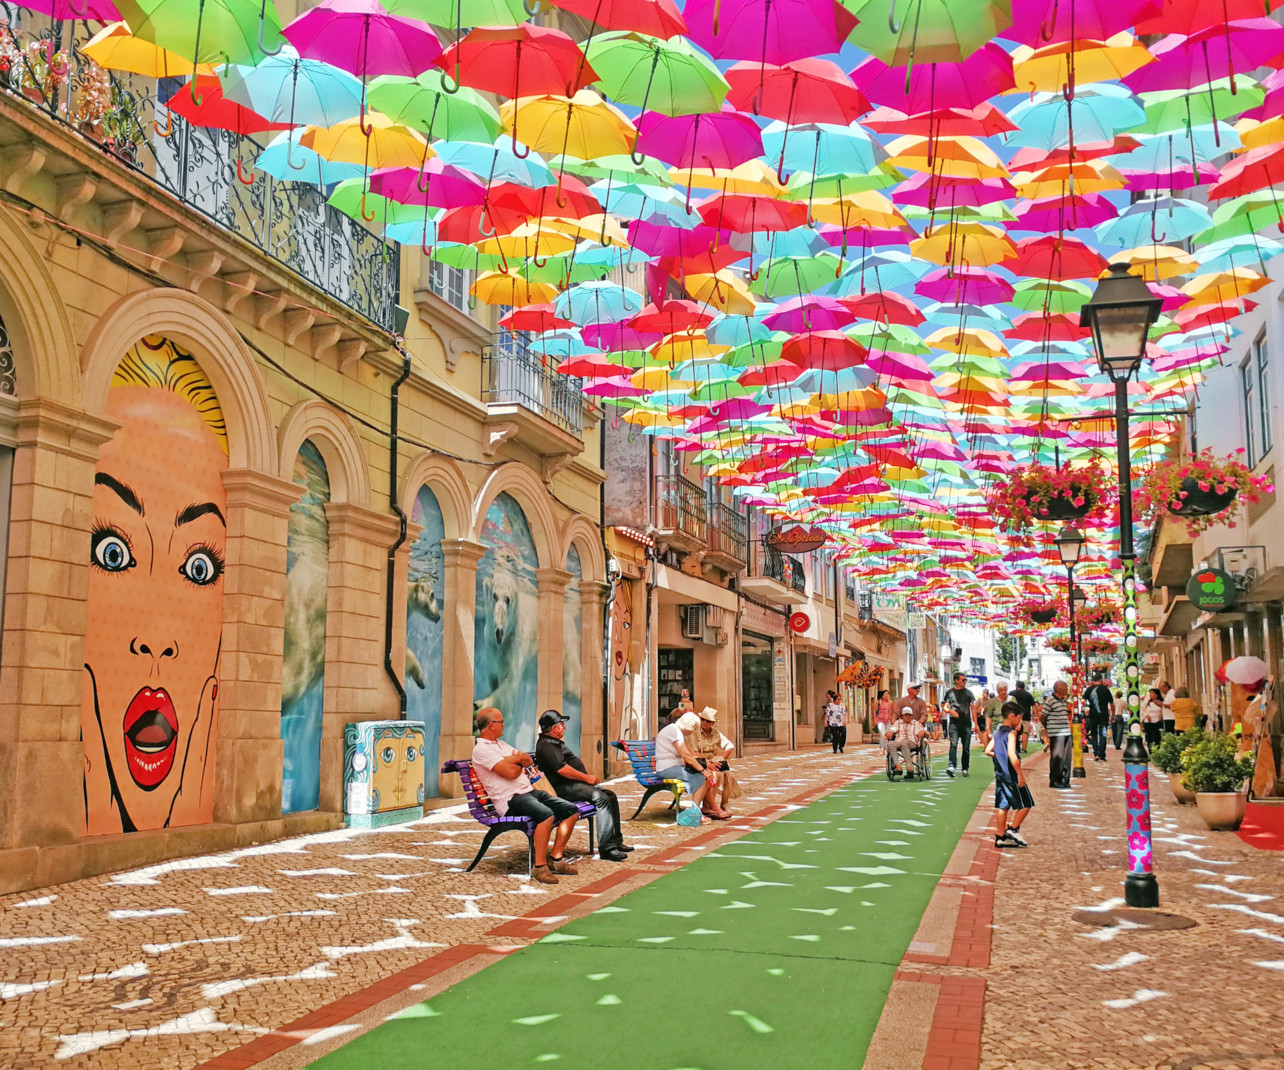 New businesses are flourishing in Águeda under the Umbrella Sky Project